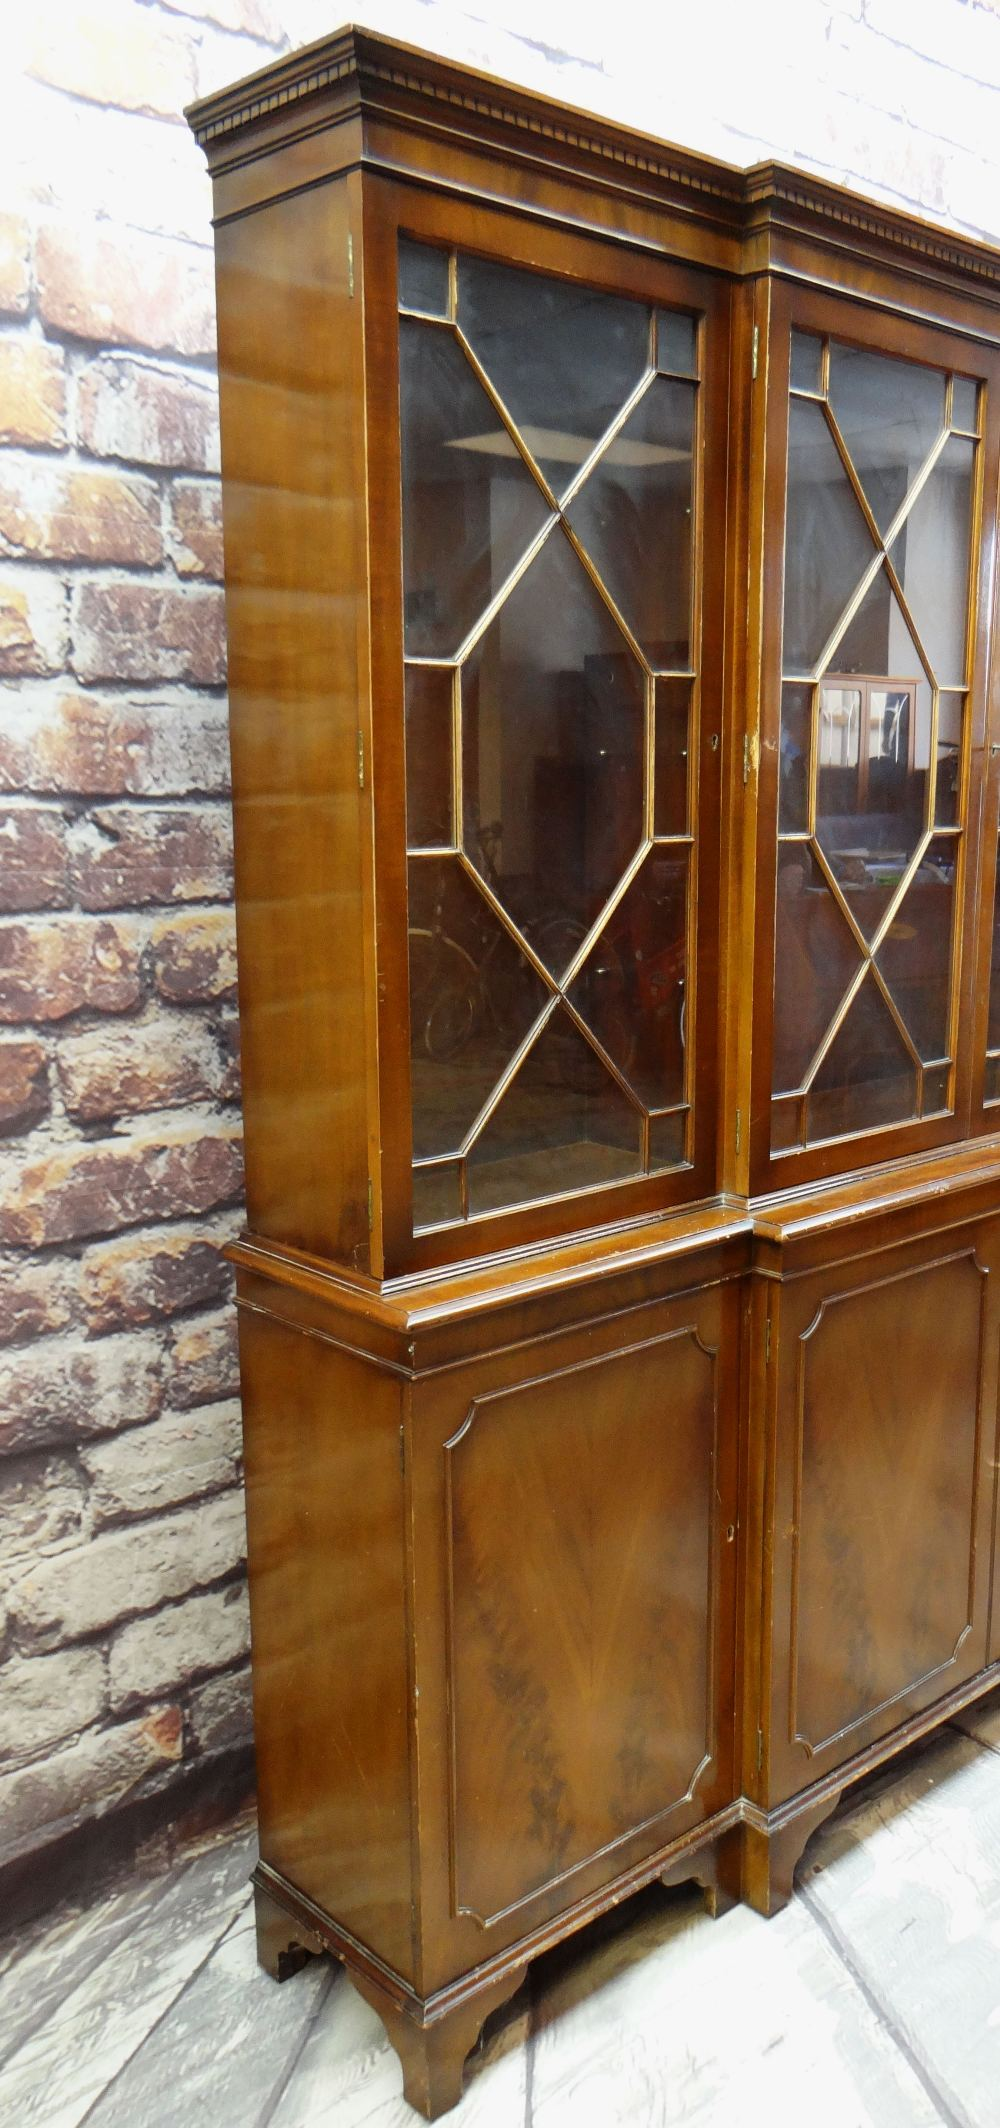 MODERN REPRODUCTION GEORGIAN-STYLE BREAKFRONT BOOKCASE, 196 x 36 x 201cms Condition: generally - Image 2 of 12